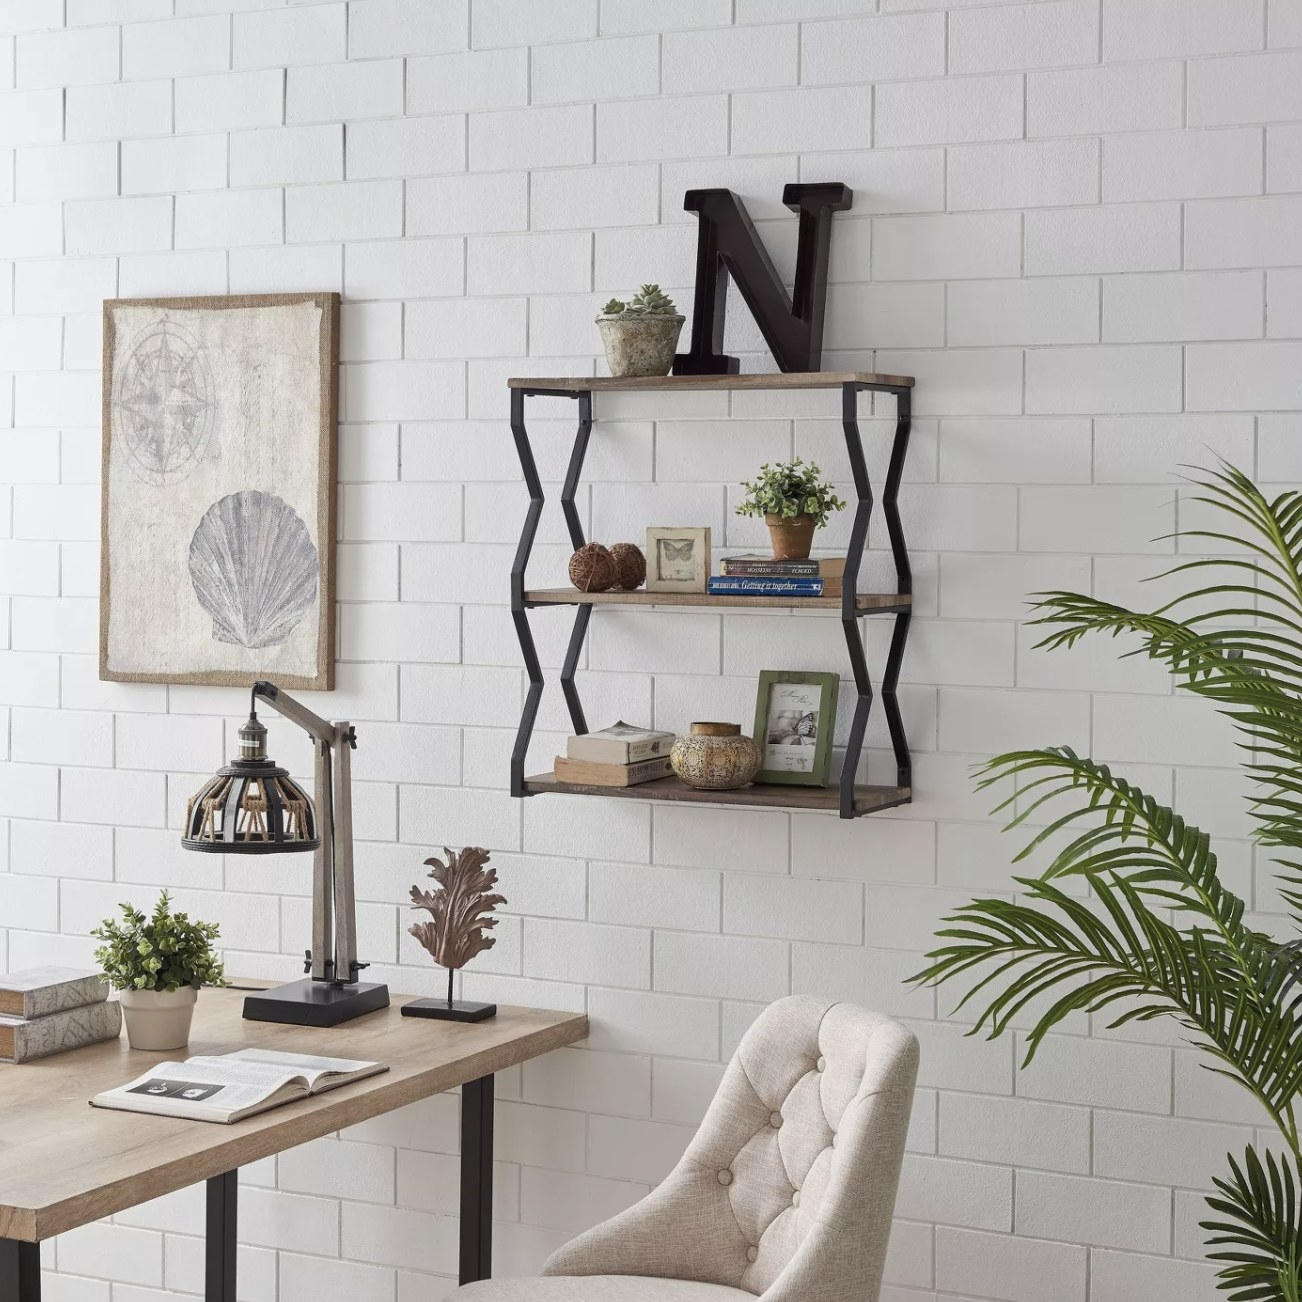 The floating shelf with decor on top